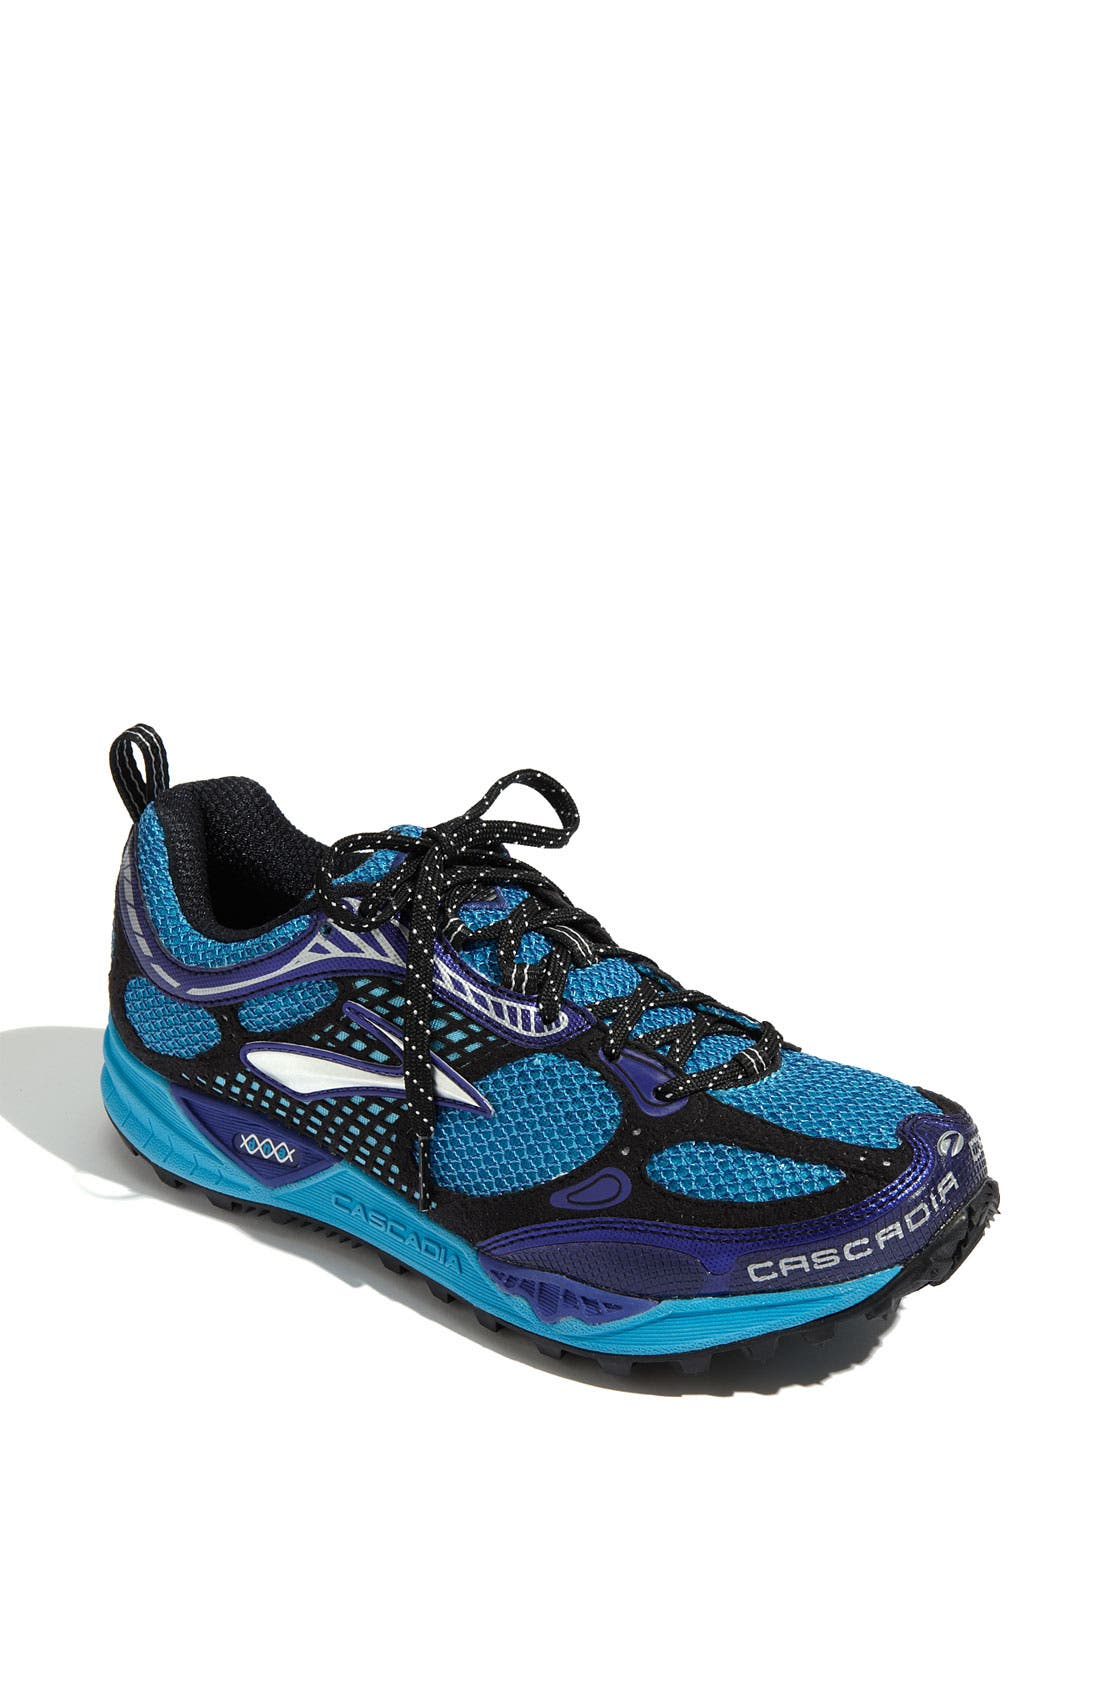 Alternate Image 1 Selected - Brooks 'Cascadia 6' Trail Running Shoe (Women)